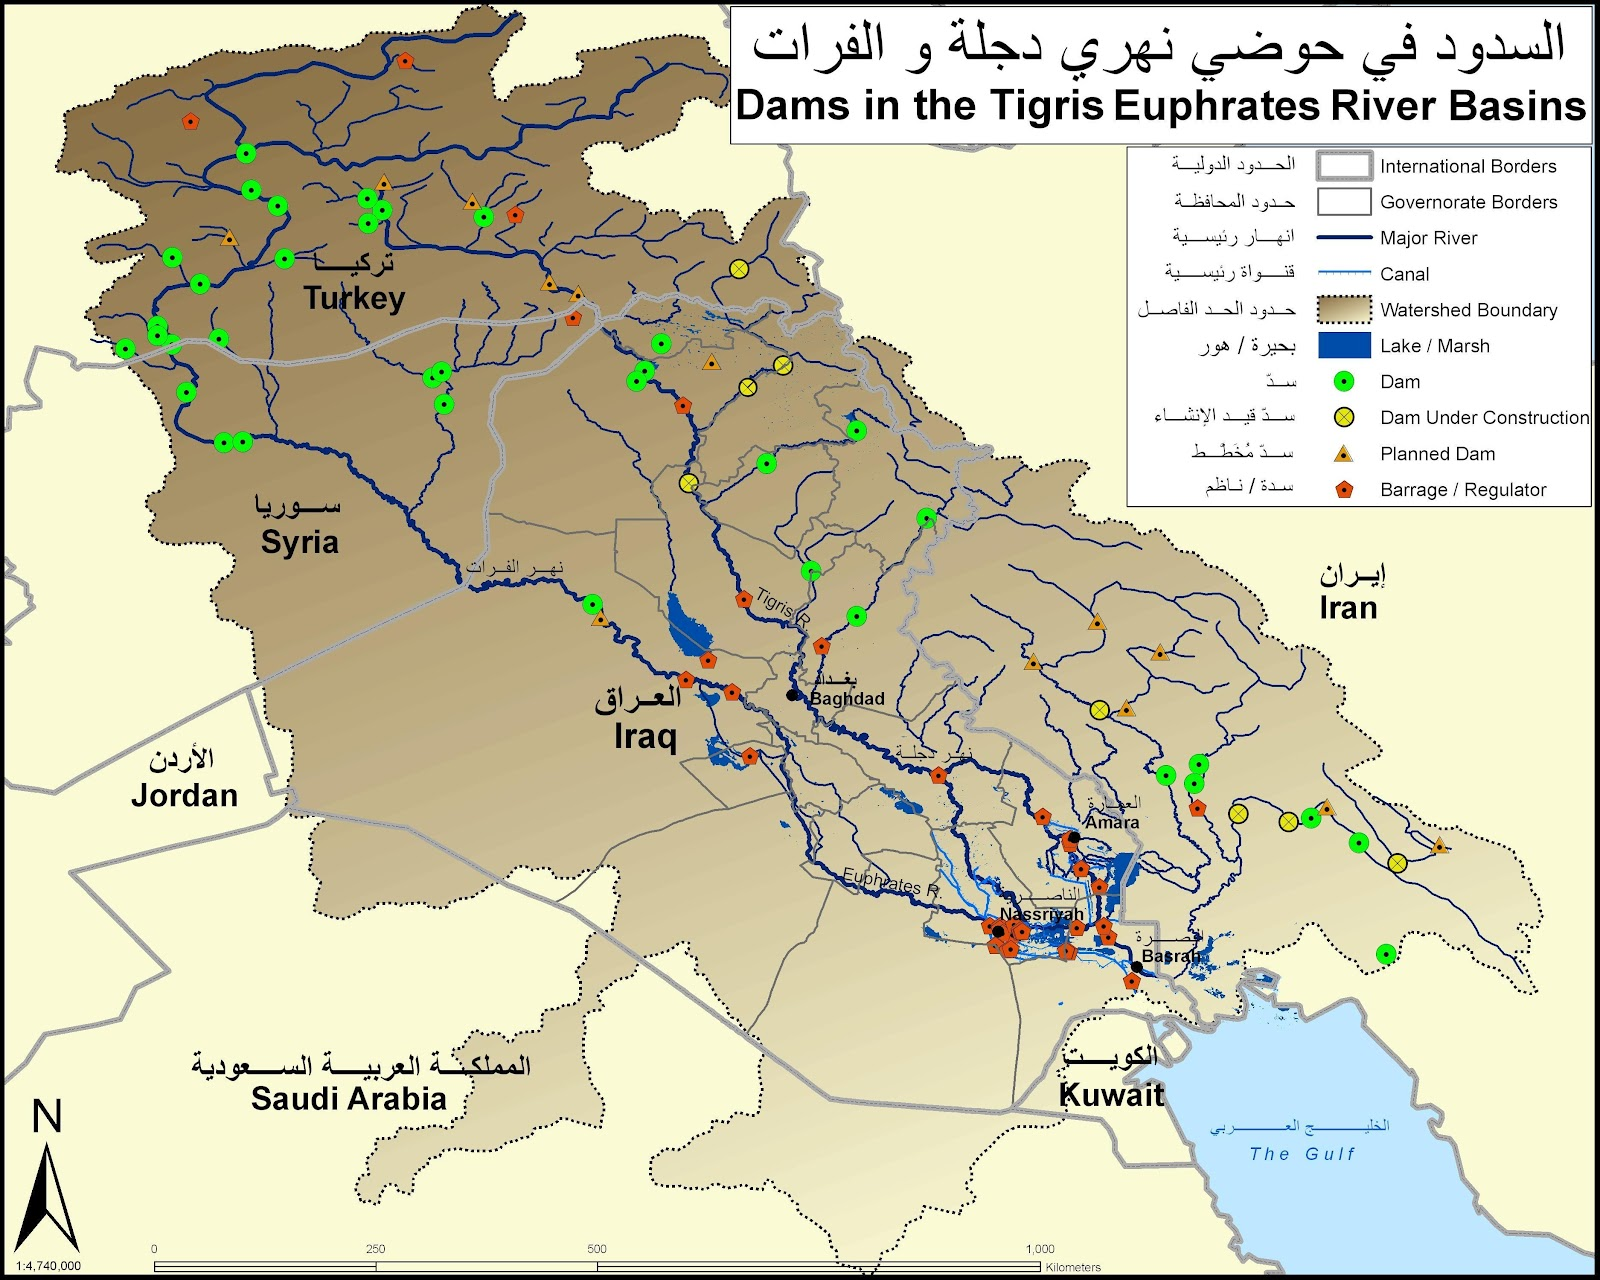 UN Iraq Needs To Address Dropping Water Levels In Euphrates And - Euphrates river on world map